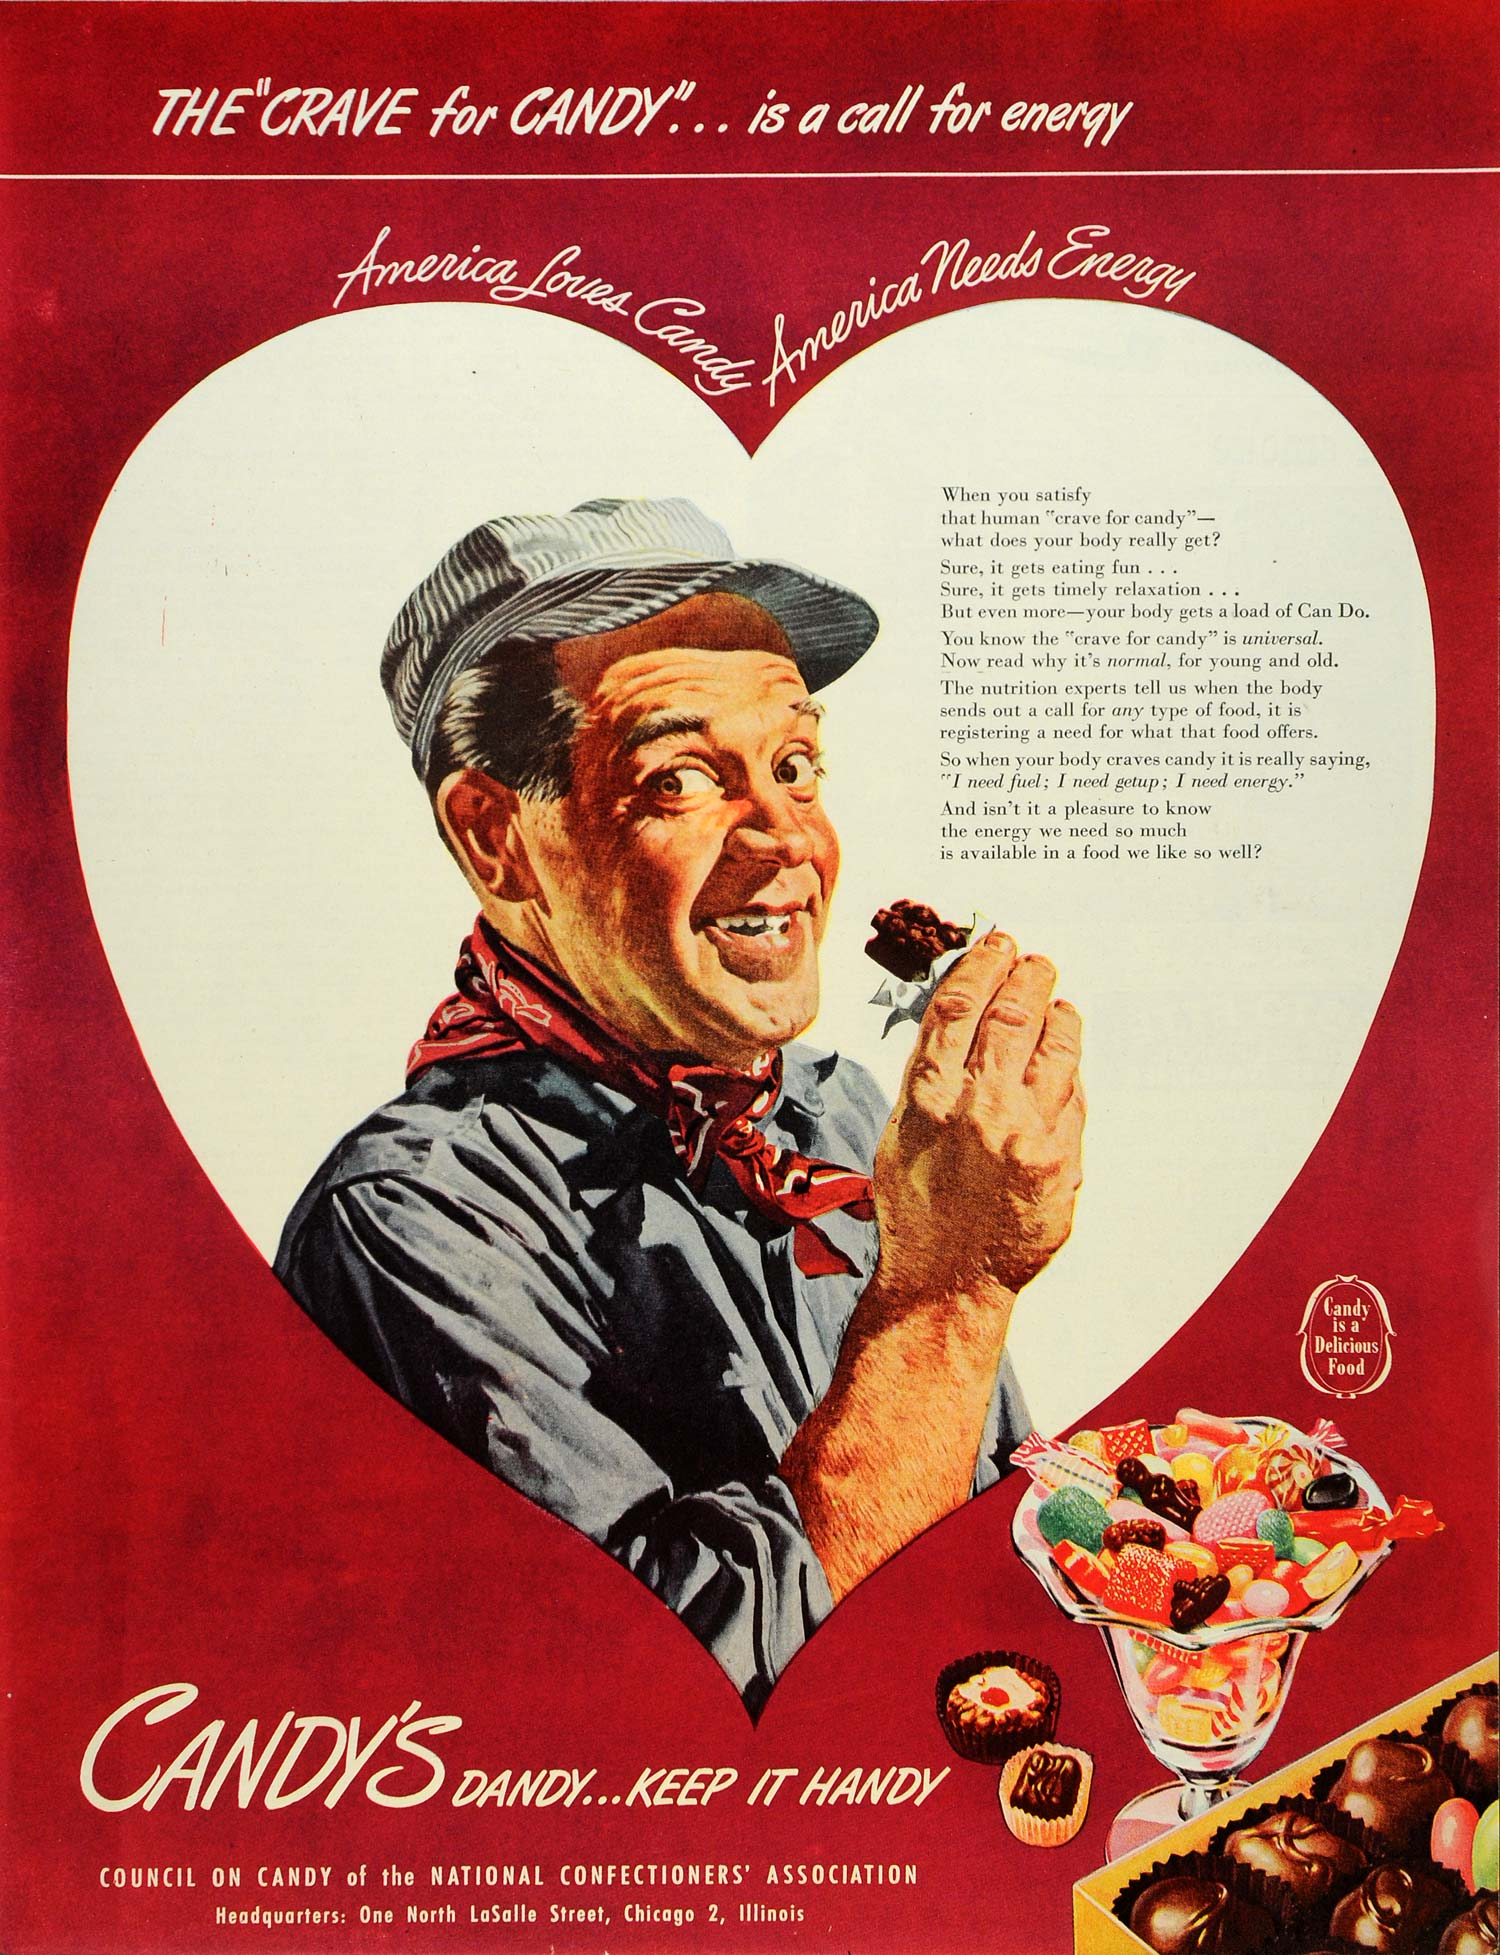 1946 Ad Council on Candy Chocolates Train Conductor - ORIGINAL ADVERTISING SEP4